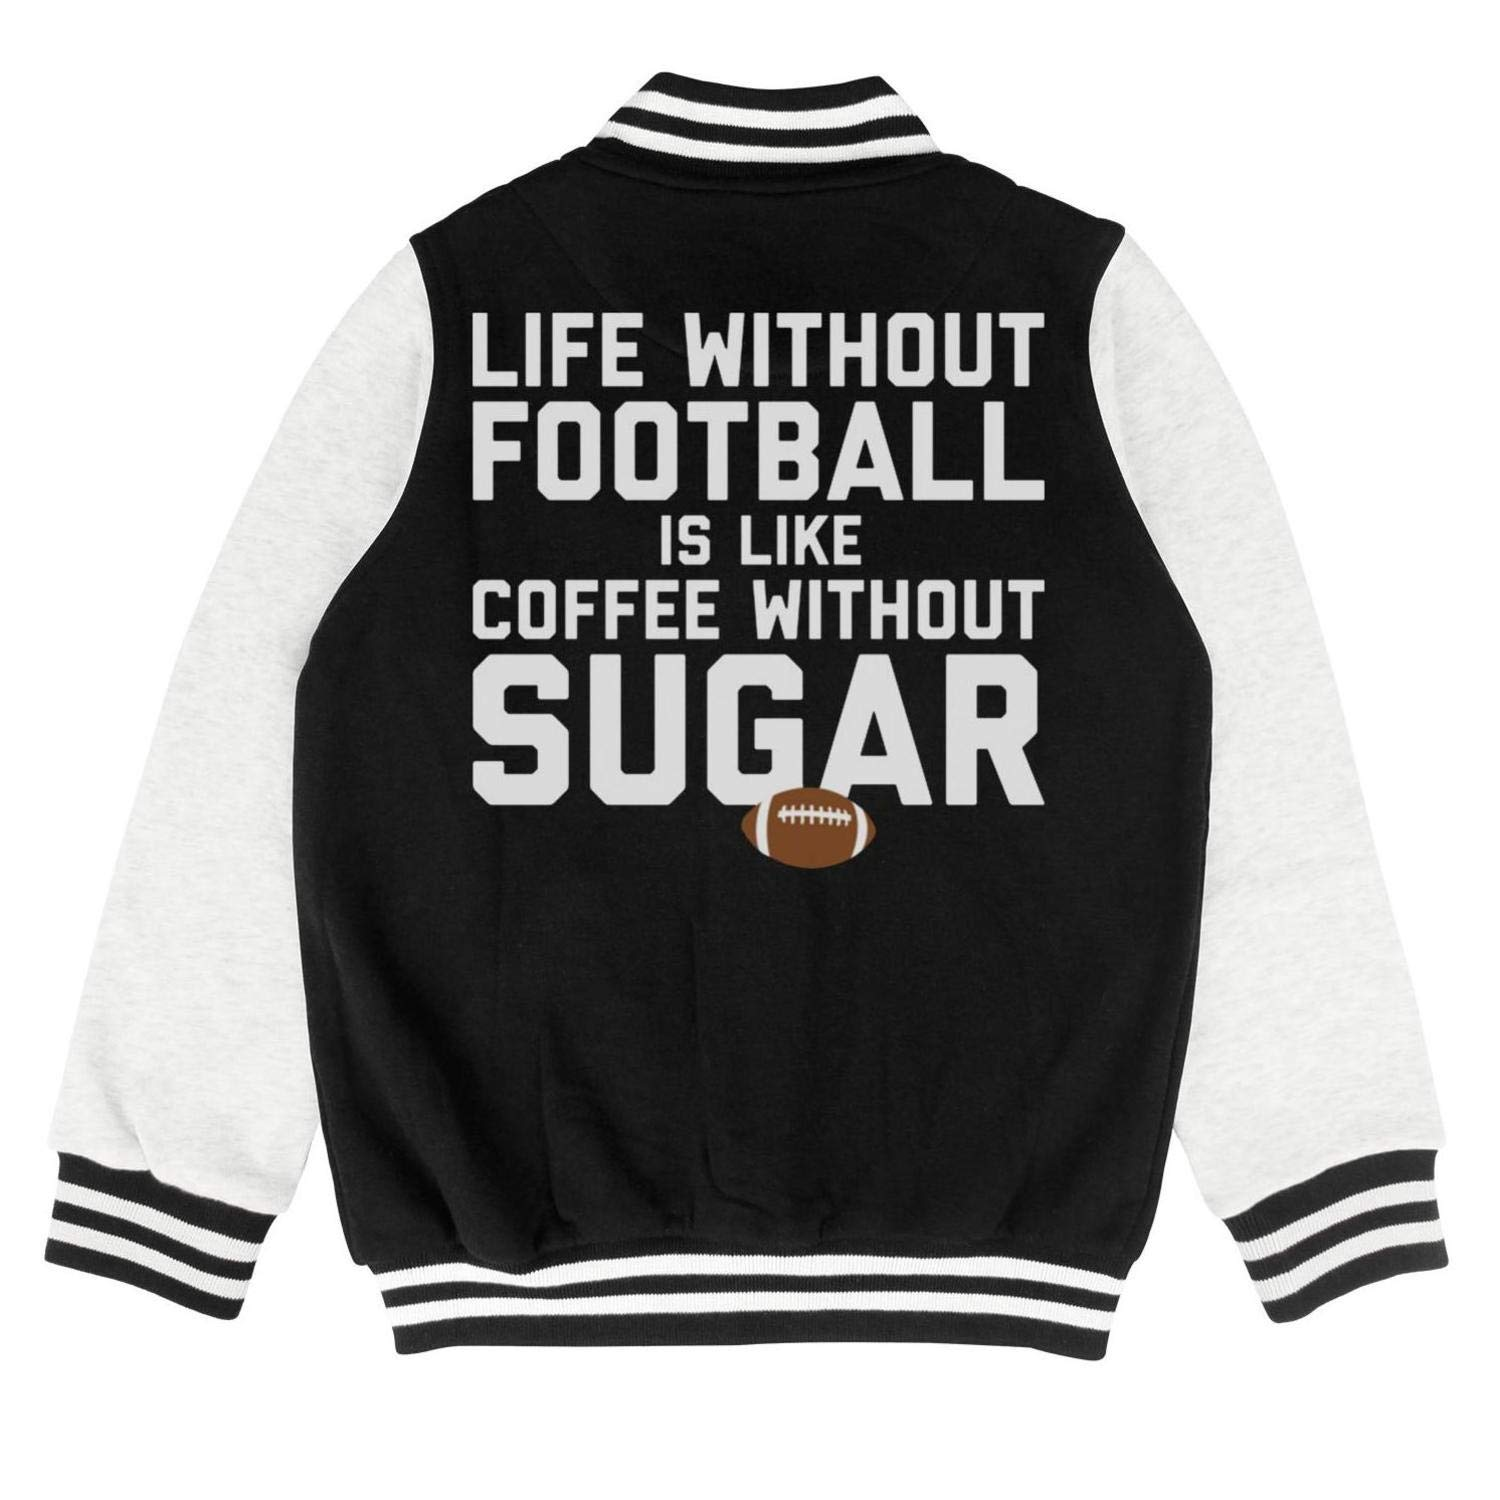 FPFLY Kids Girls Boys Life-Without-Football Printed Cotton Hoodie Button Sport Sweatershirt 2-10 Years